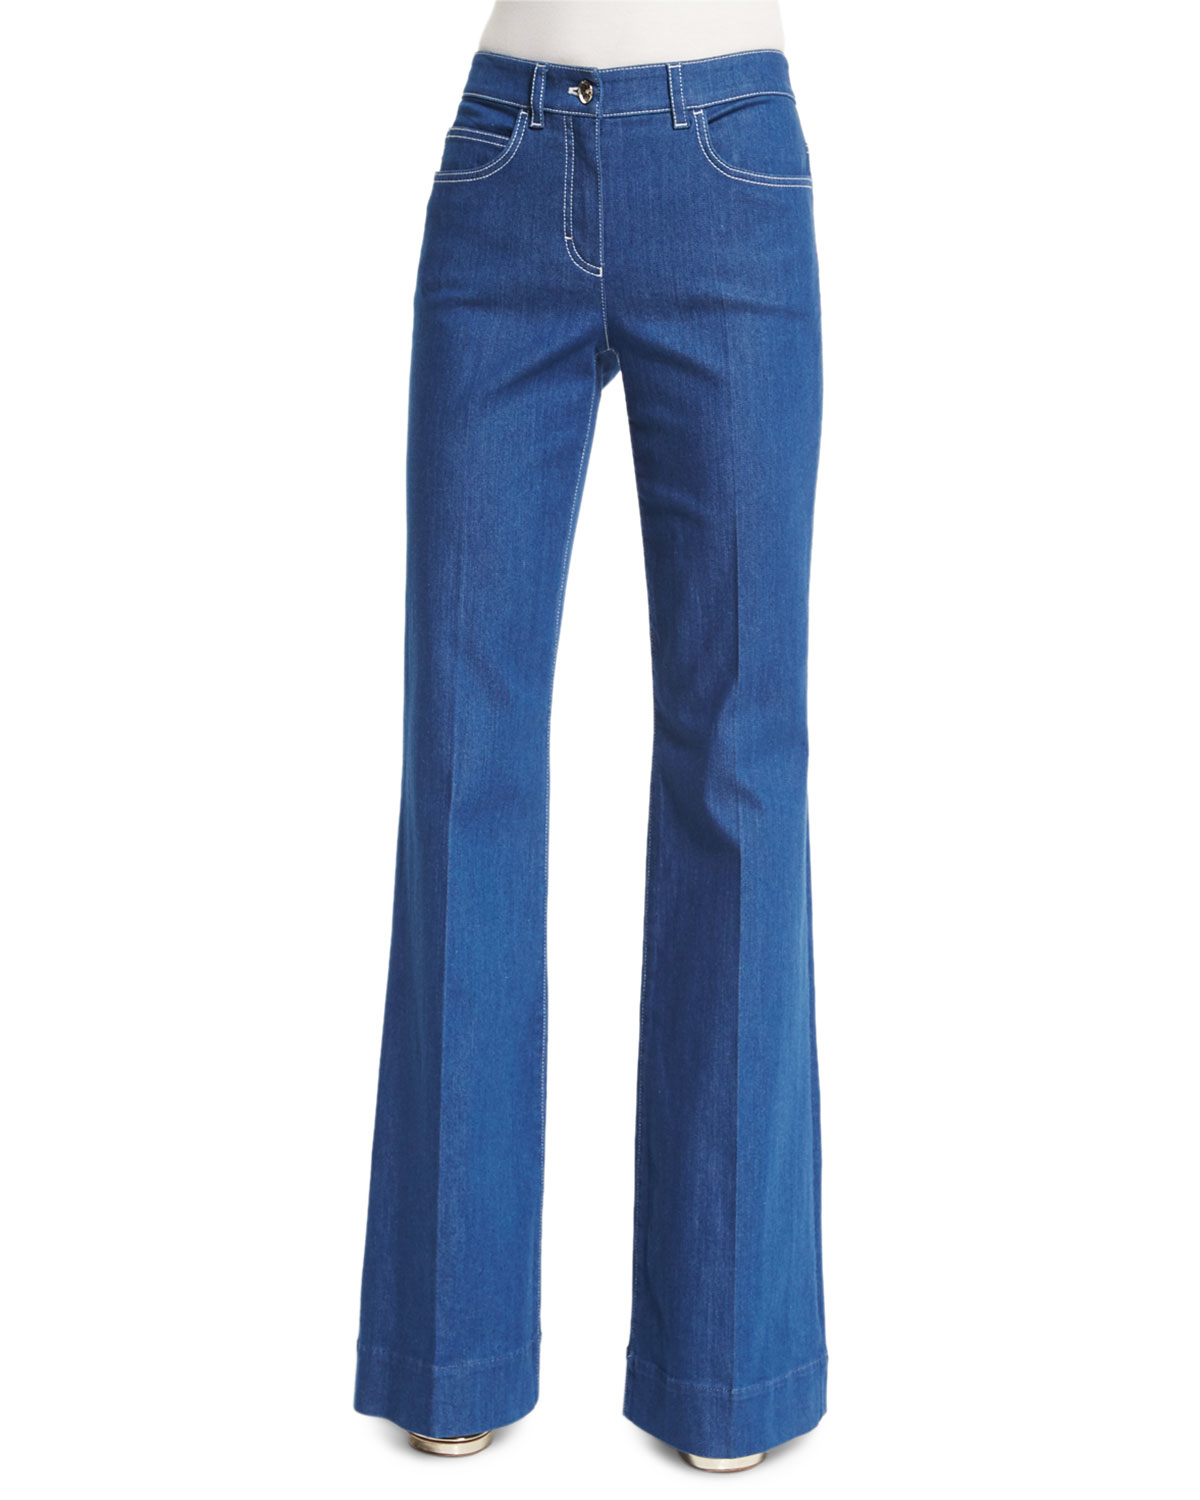 Buy New Womens Flare Jeans at Macy's. Shop Online for the Latest Designer Flare Jeans for Women at imaginary-7mbh1j.cf FREE SHIPPING AVAILABLE!